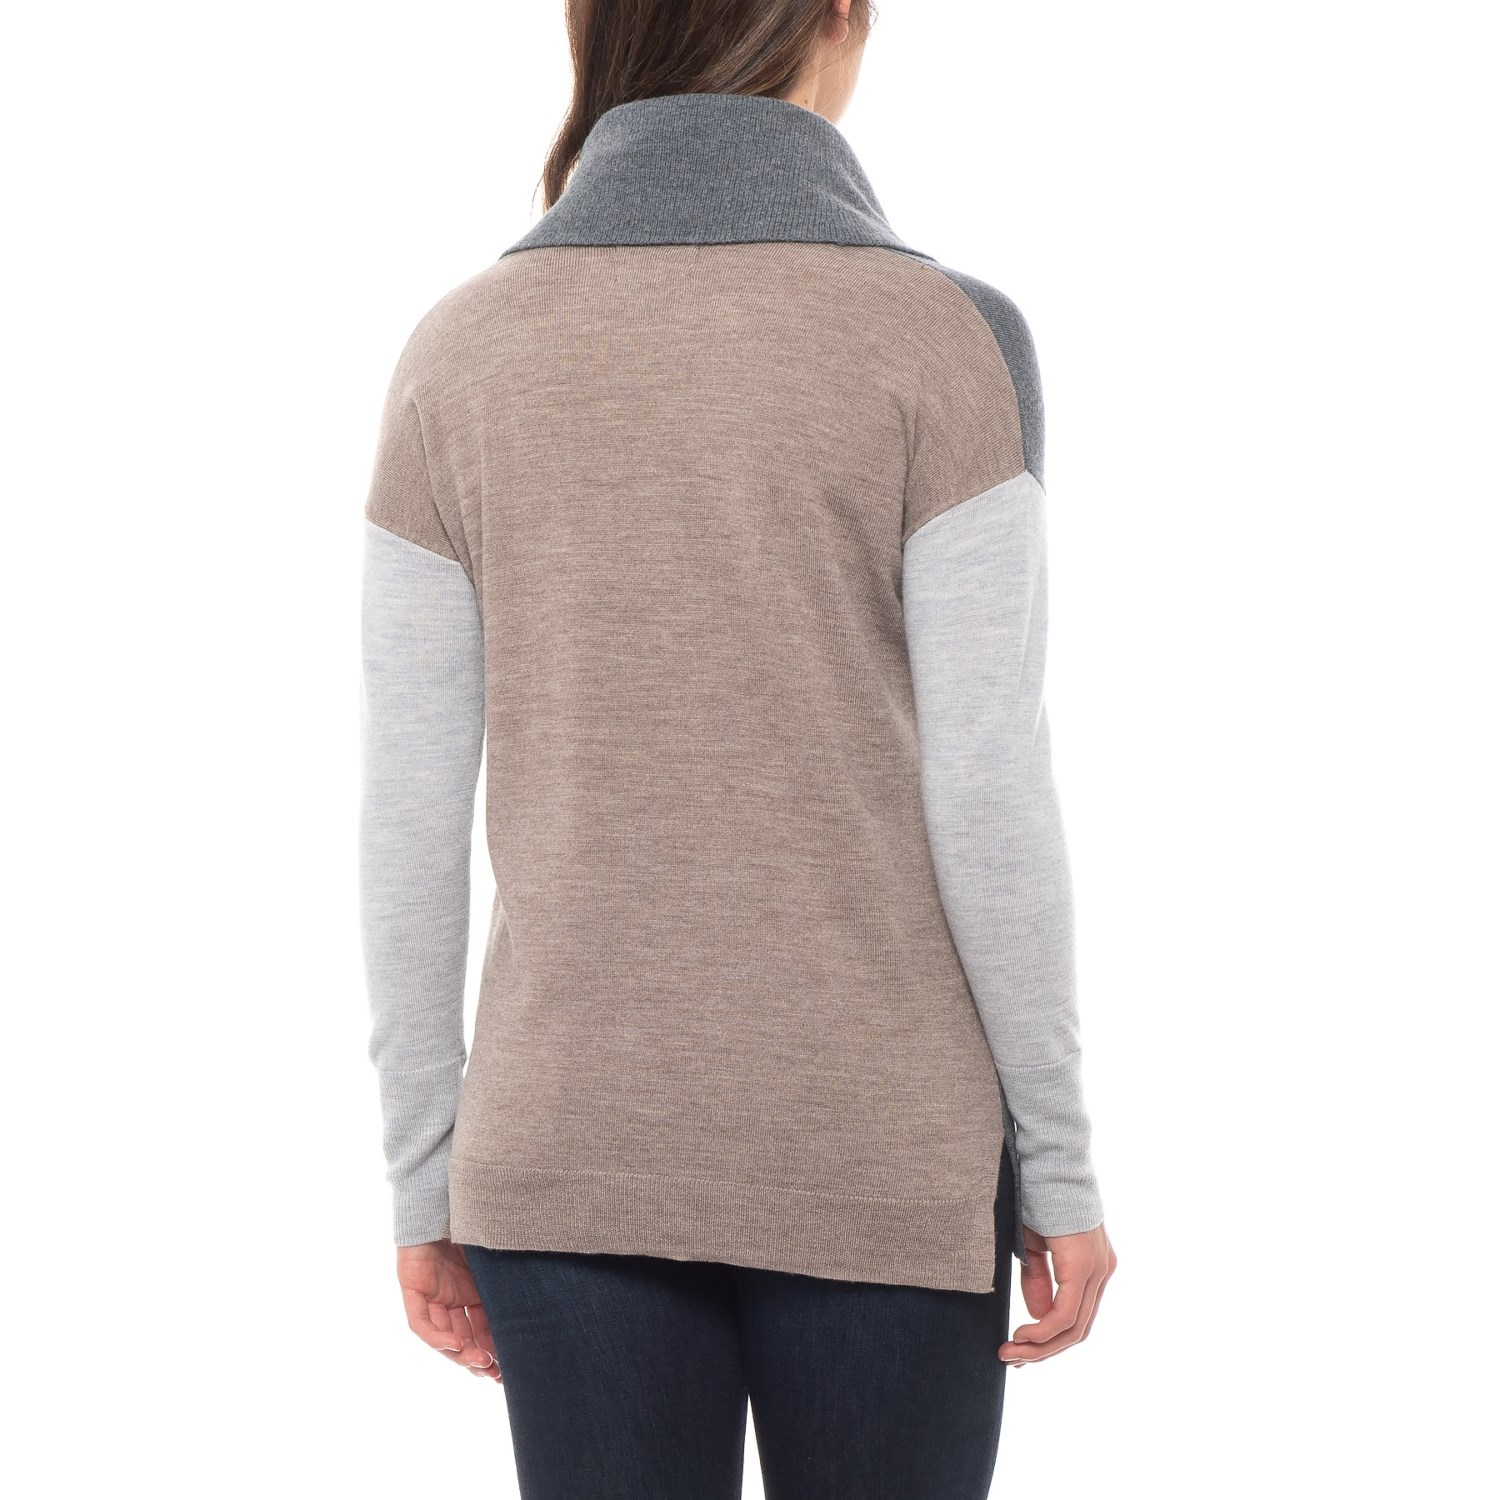 b4c75fe64e Tahari Color-Blocked Tunic Sweater - Merino Wool (For Women)